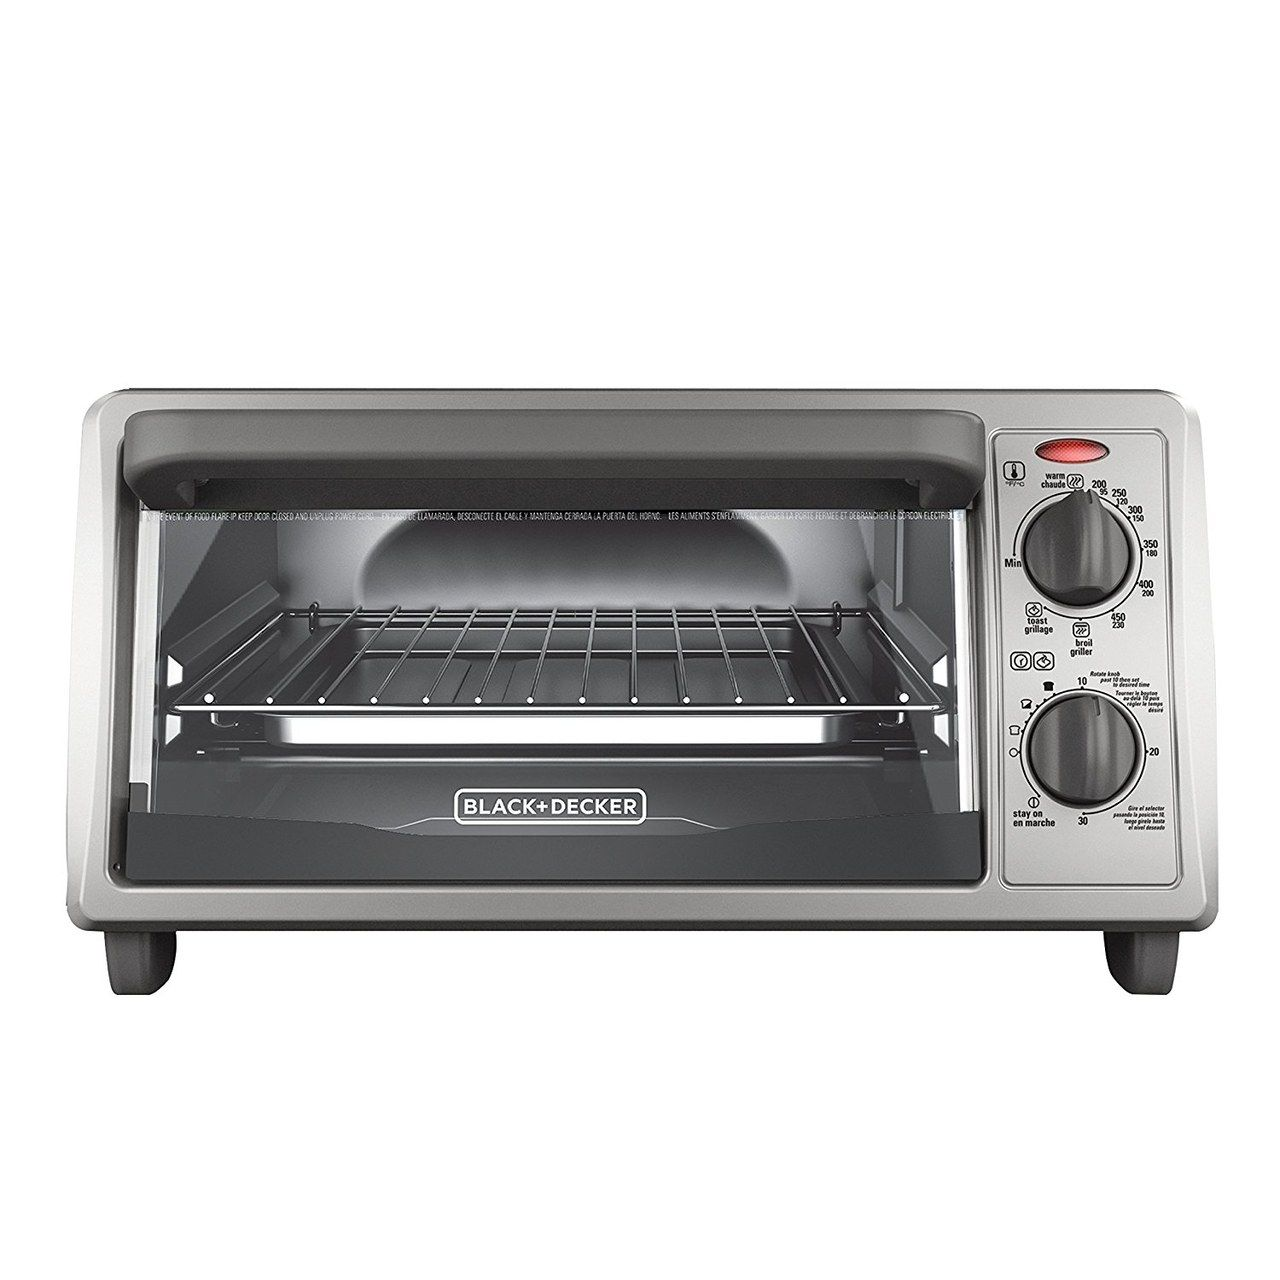 The Best Toaster Ovens For Roast Chicken Emergency Cookies And